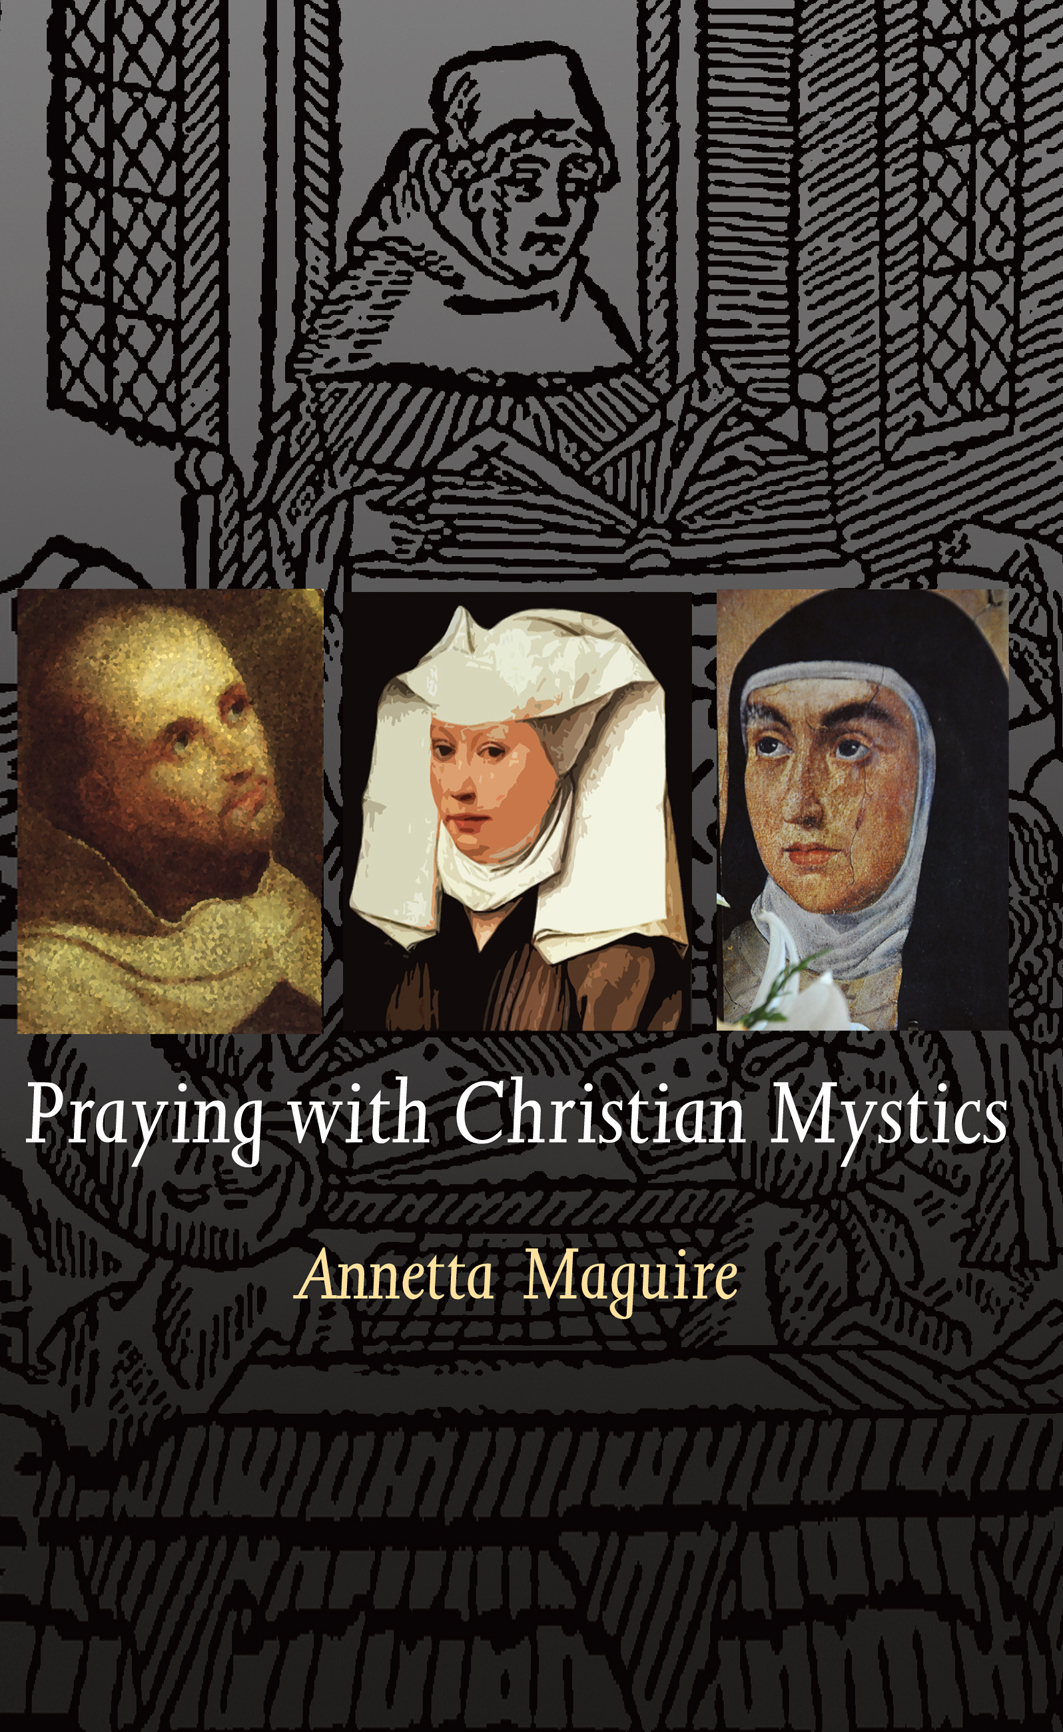 Praying with the Christian Mystics: An Introduction to the Life and Writings of Four Christian Mystics